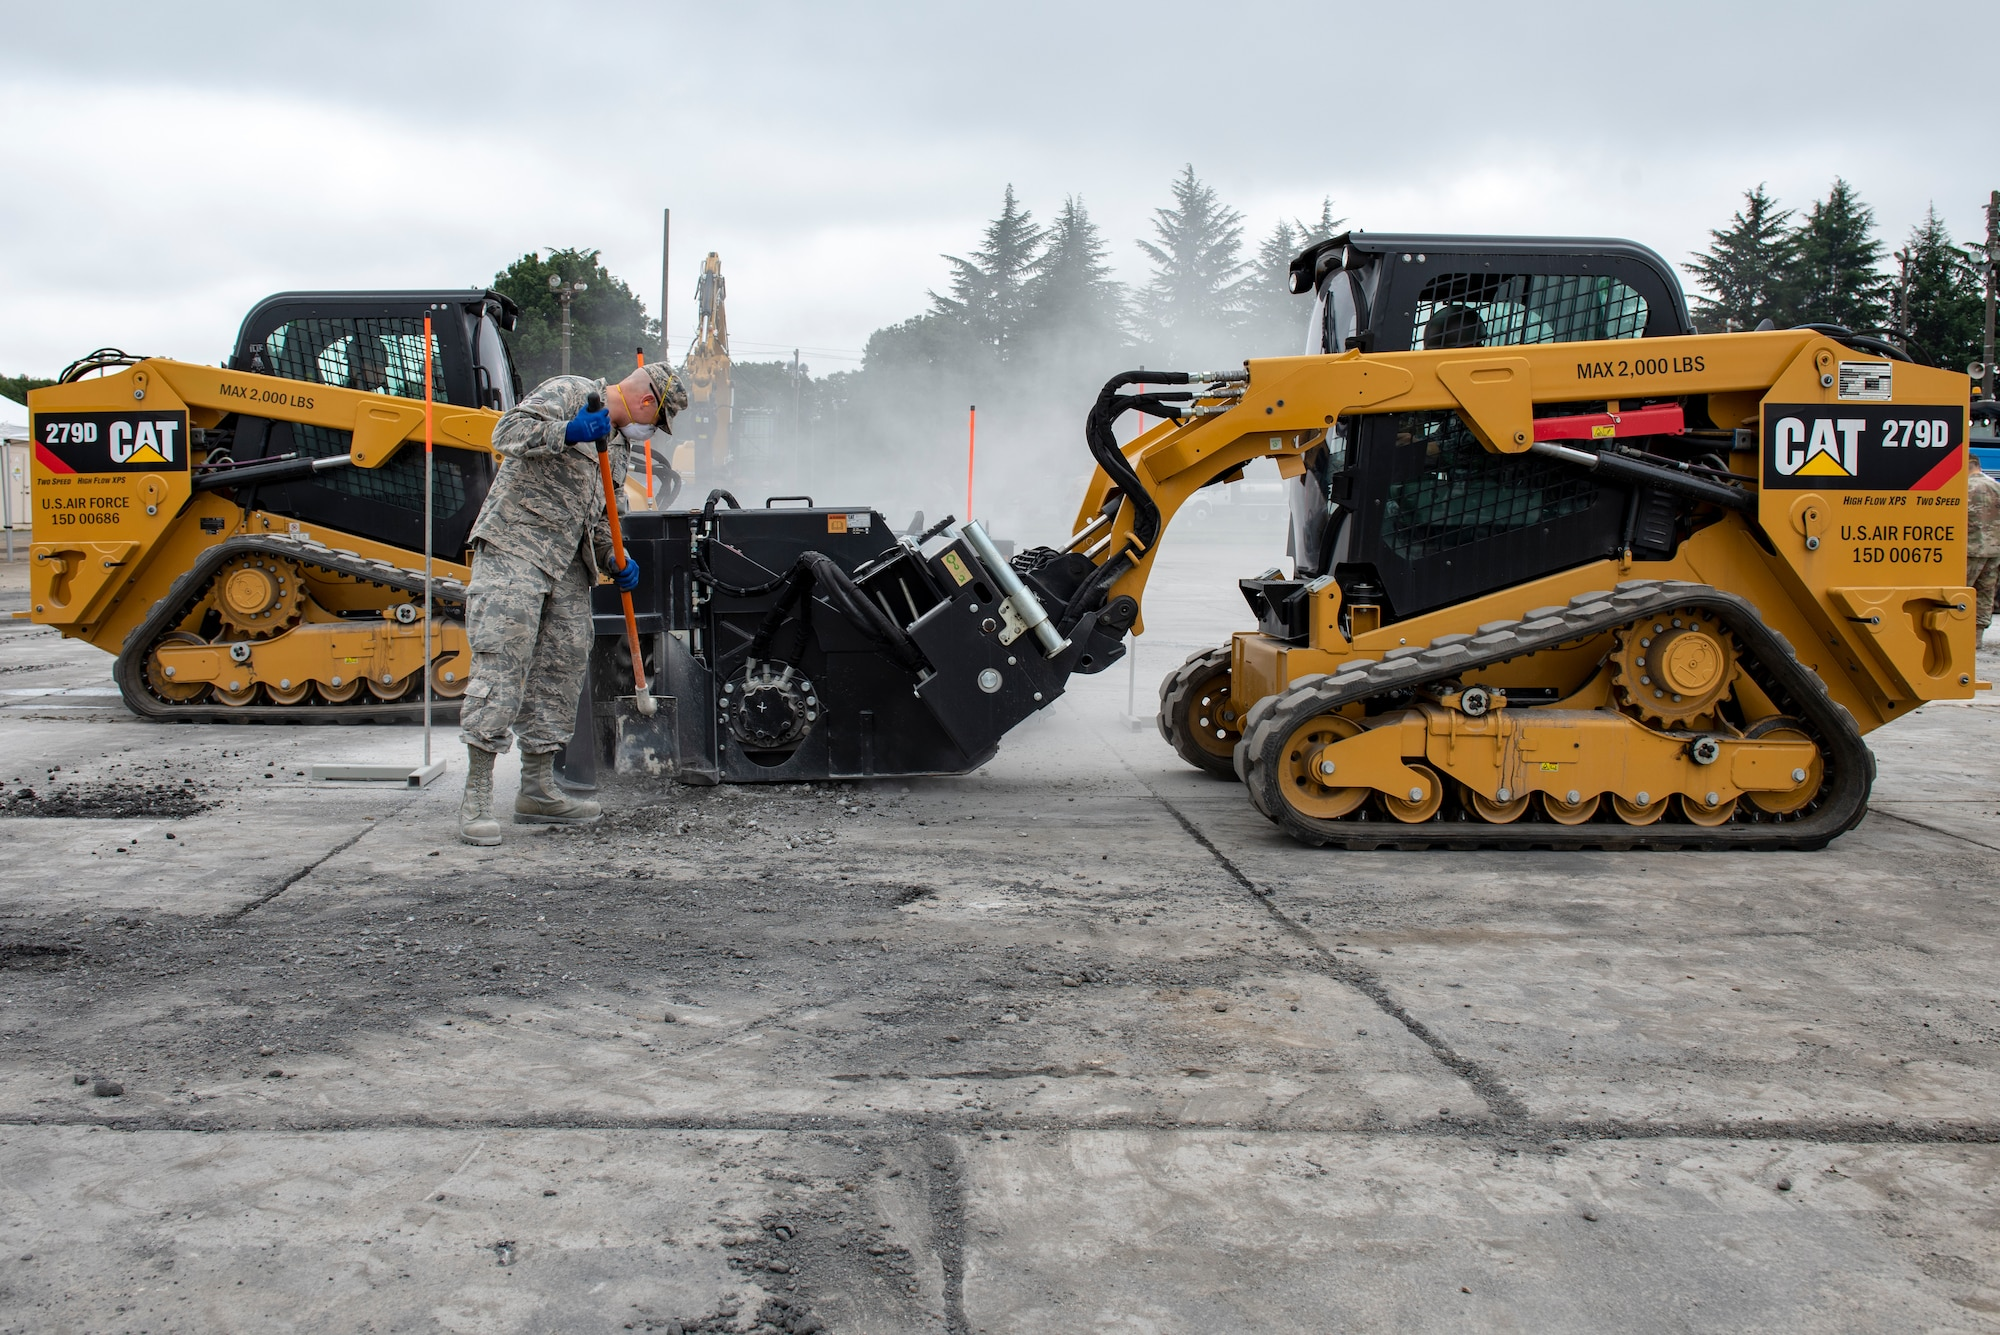 U.S. Air Force and the Japan Air Self-Defense Force (JASDF) civil engineers work together to cut a square around the simulated impact crater as part of rapid airfield damage repair (RADR) operations during Pacific Unity 2019 at Yokota Air Base, Japan, August 22, 2019.